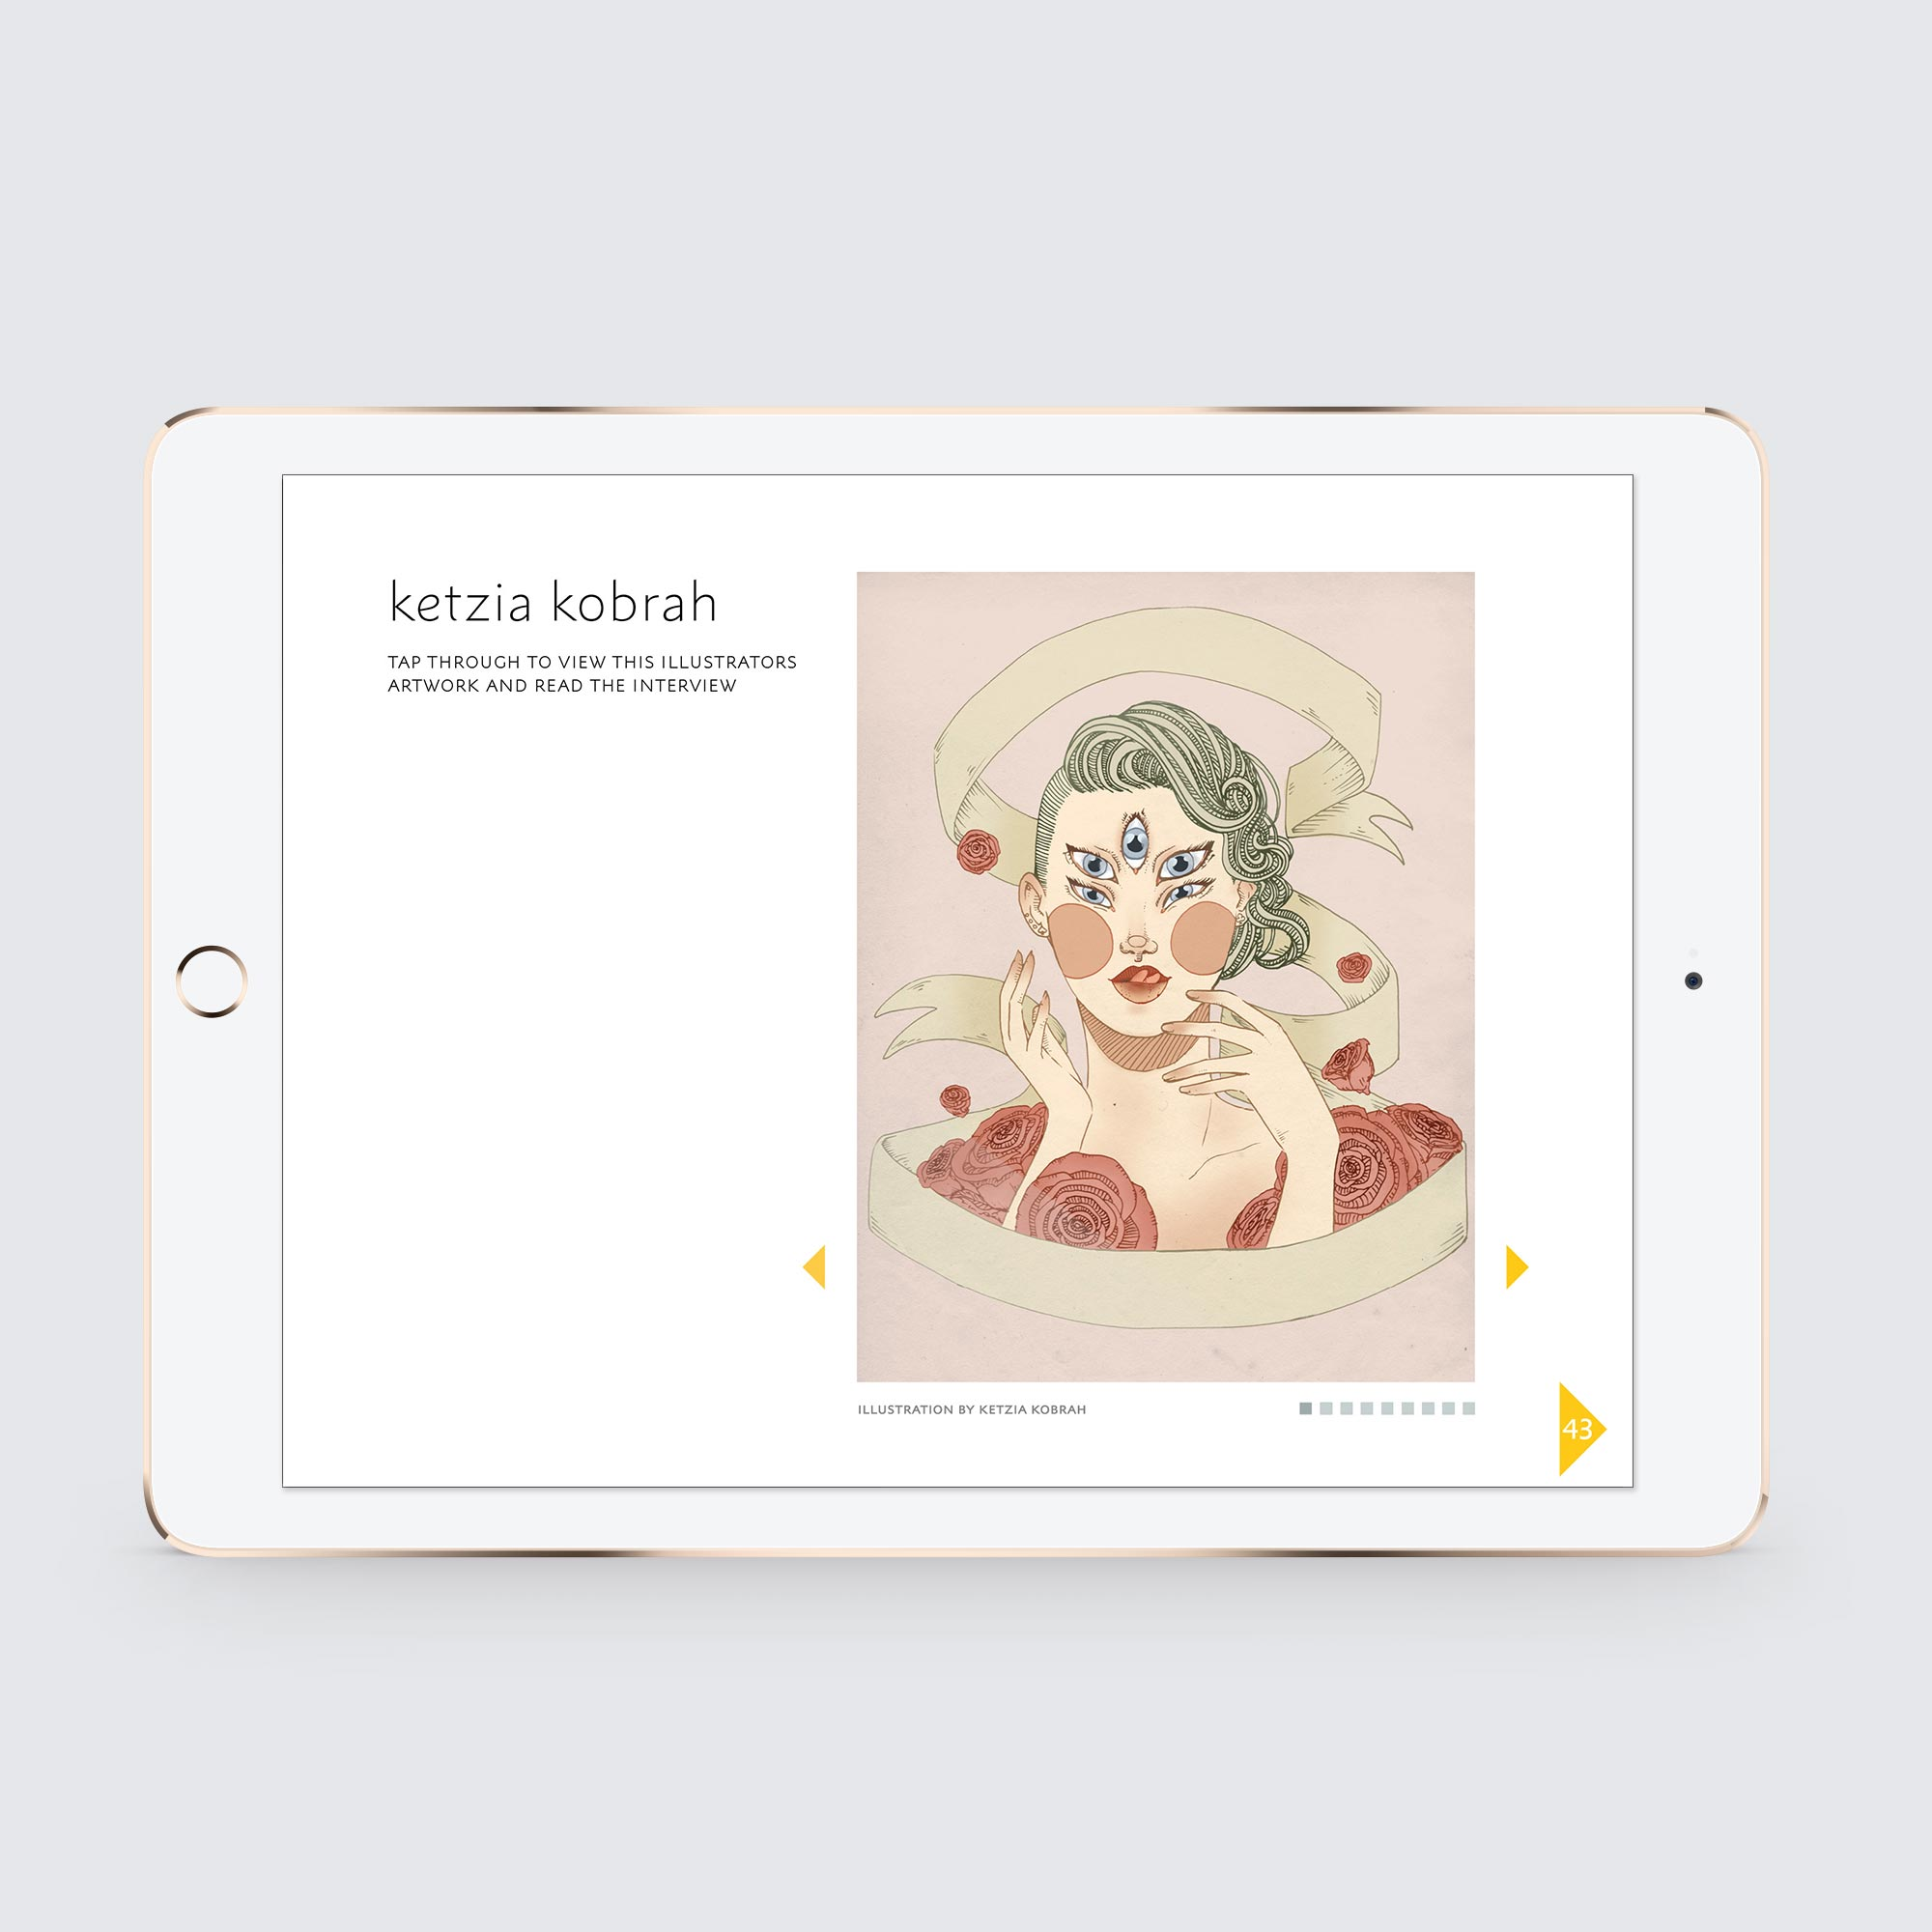 This is a layout for the digital version of the printed  Contour, The Fashion Illustration Journal  was created for the Apple iPad and is available on Apple iBooks  here .